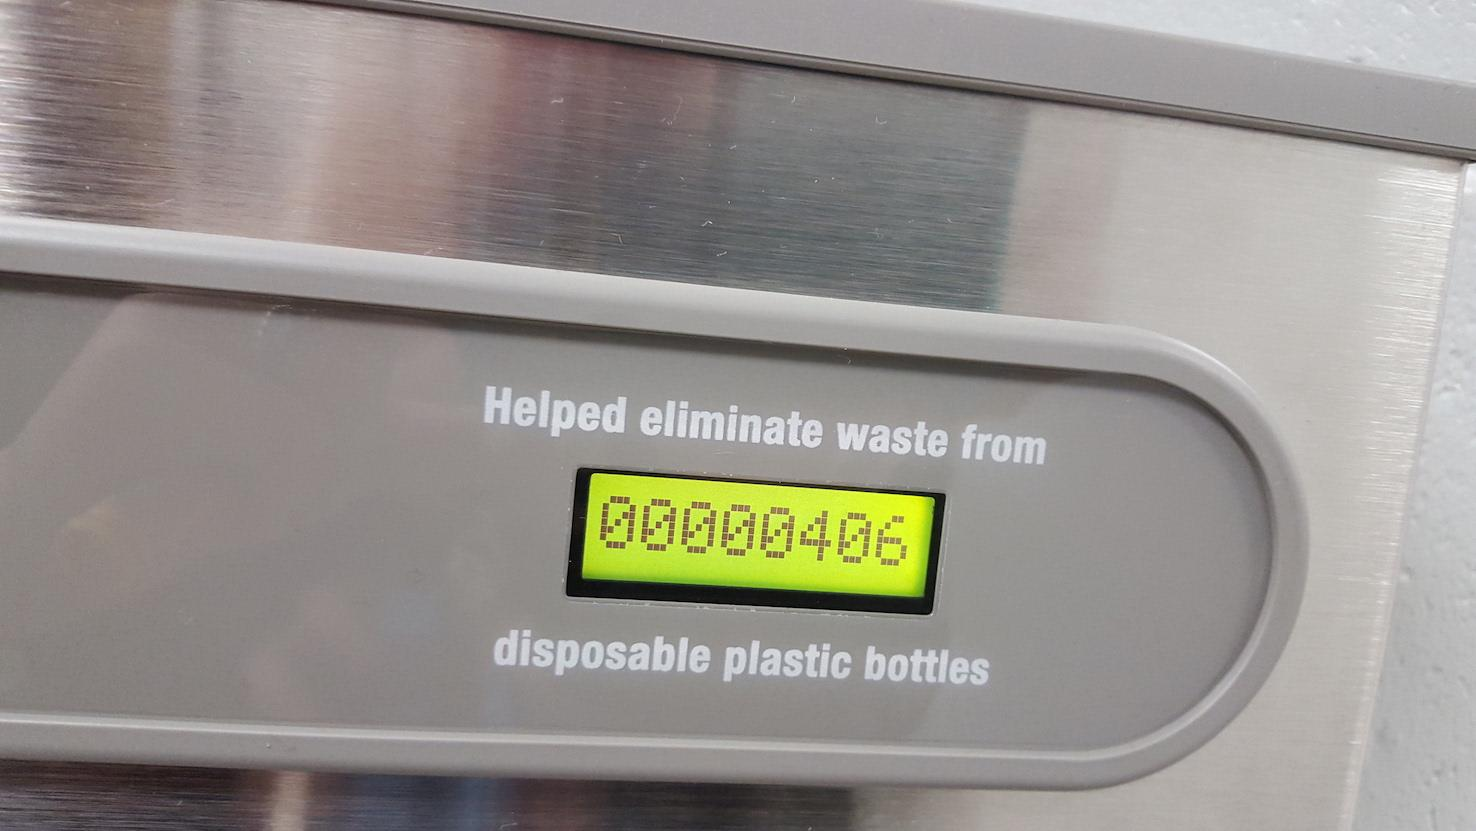 As of 6:50am, January 18th, WRHS has helped eliminate waste from 406 plastic bottles!!